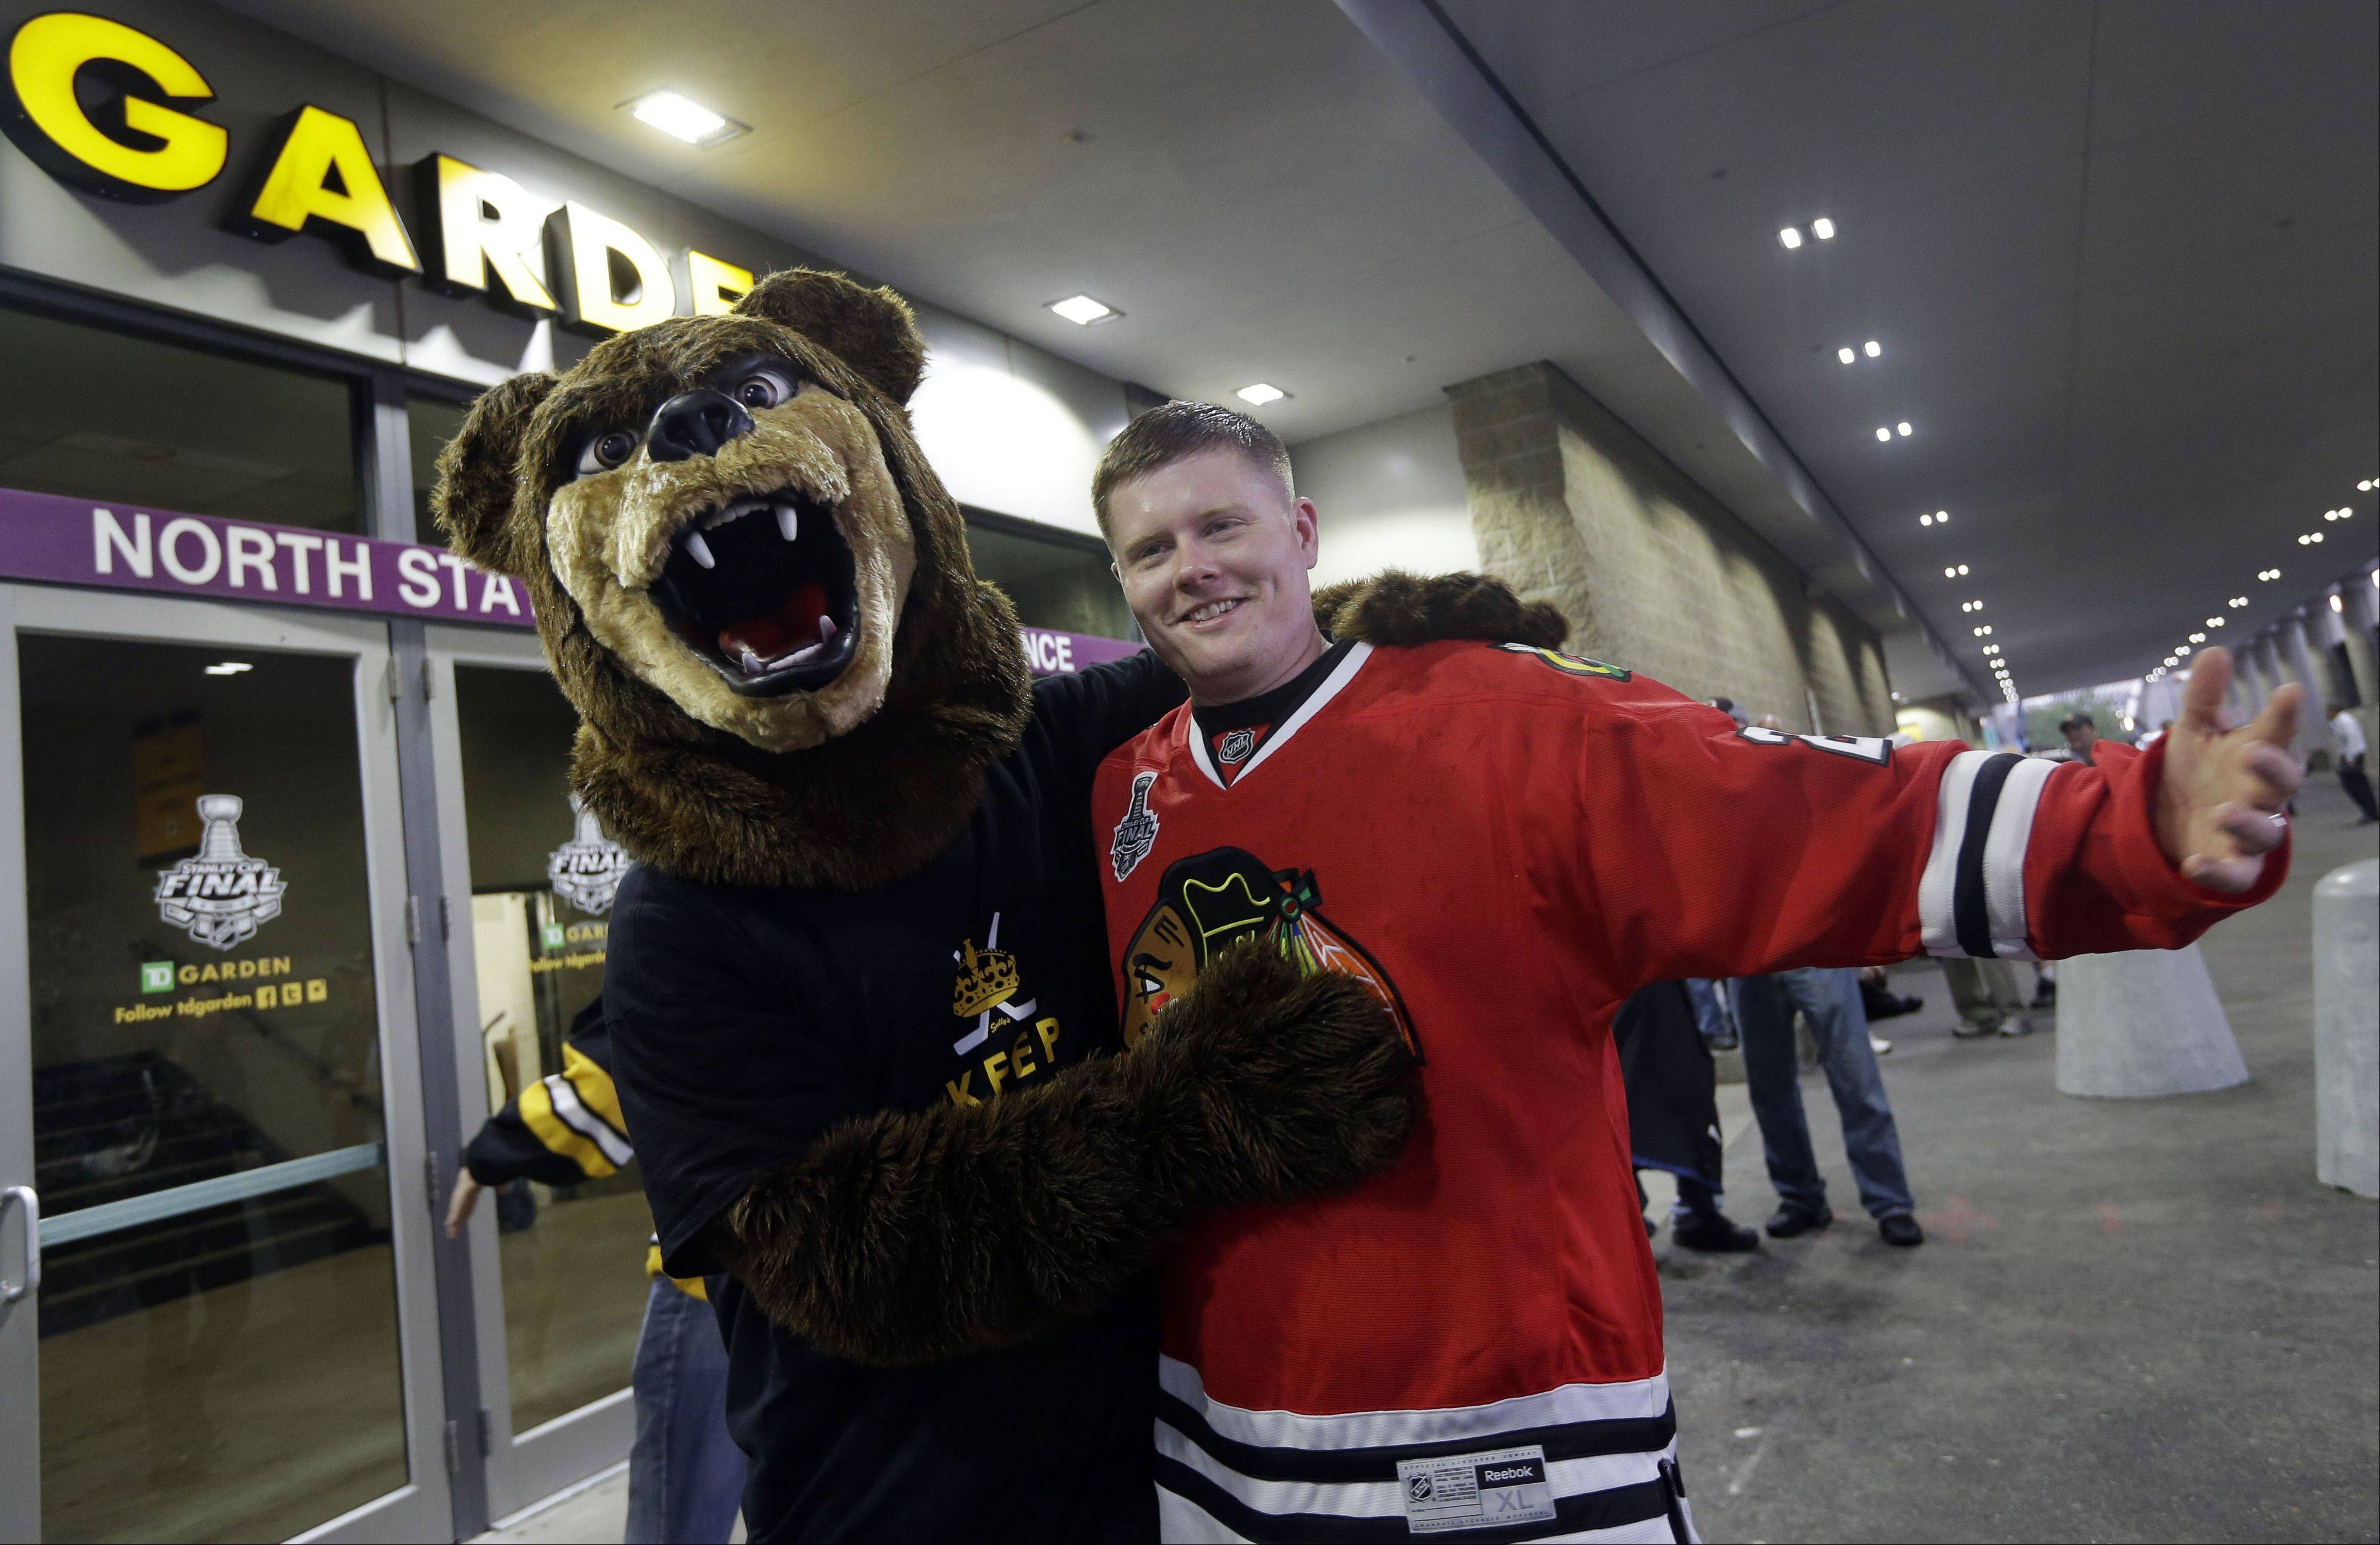 A Boston Bruins fan wearing a bear costume stands with Blackhawks fan T.J. Budka, right, of Ayer, Mass., outside the spacious TD Garden in Boston. The old Boston Garden wasn't quite so spacious or friendly for visitors.